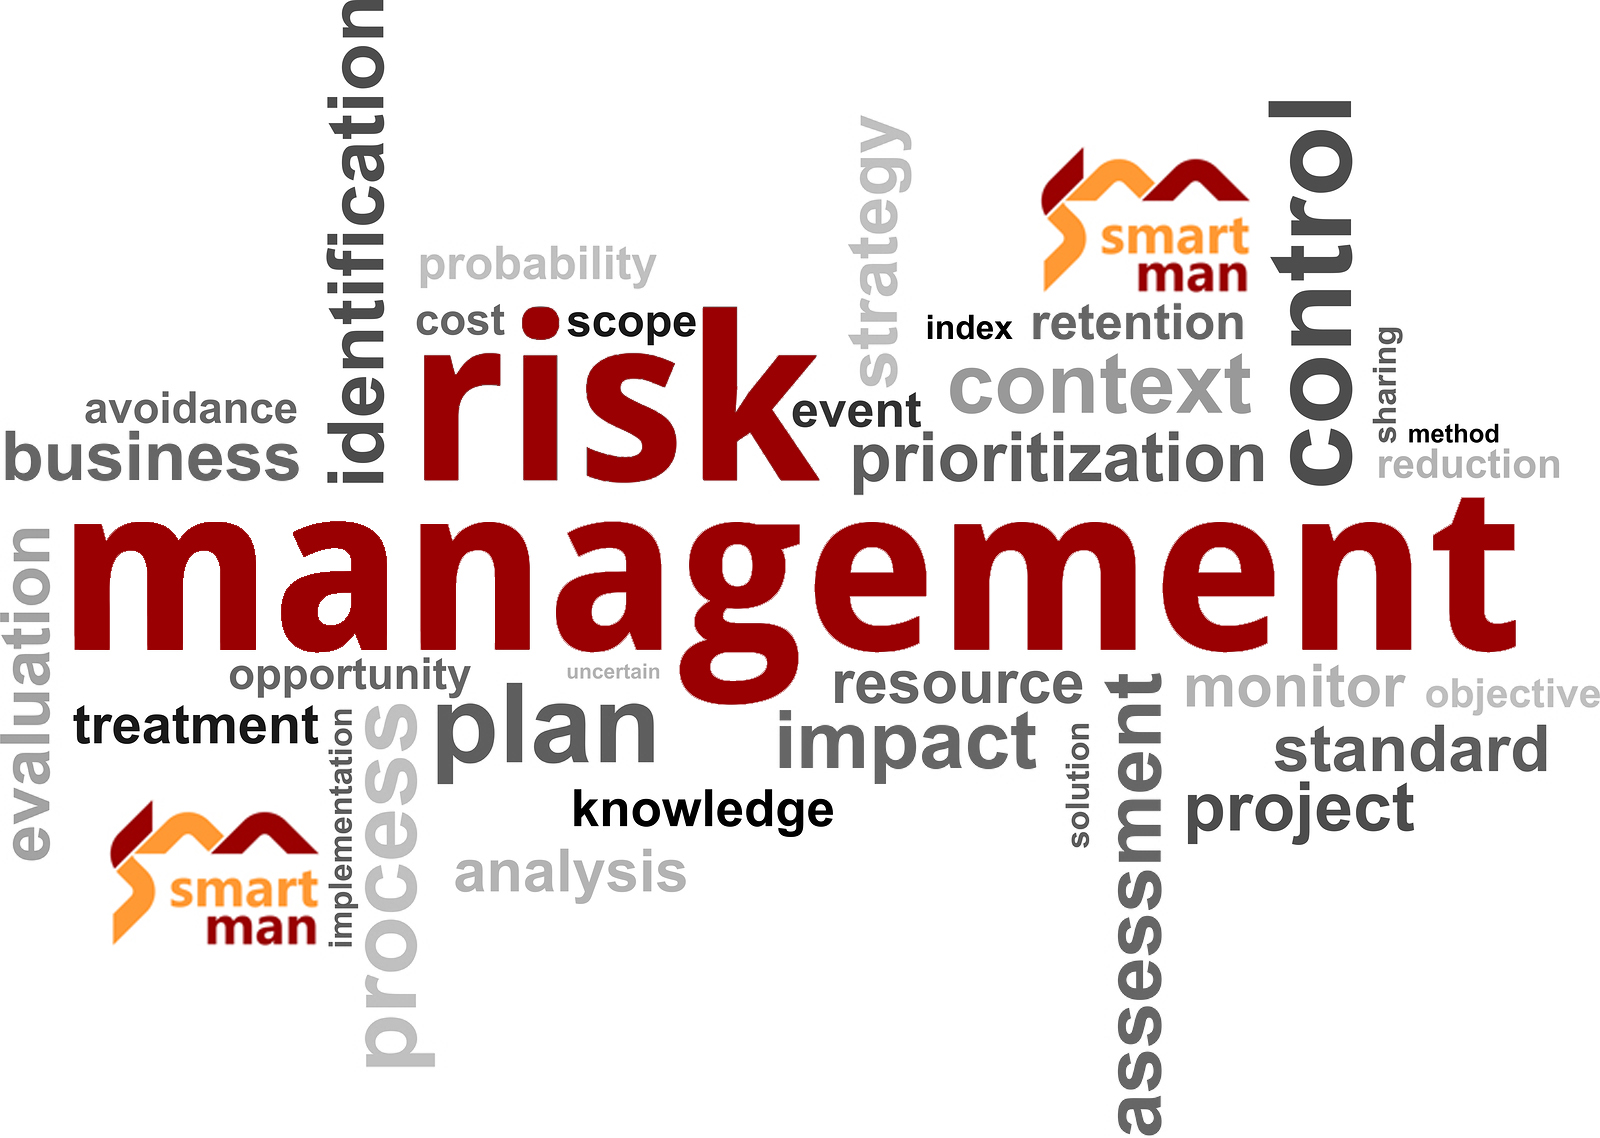 bigstock-Word-Cloud-Risk-Management-41385367